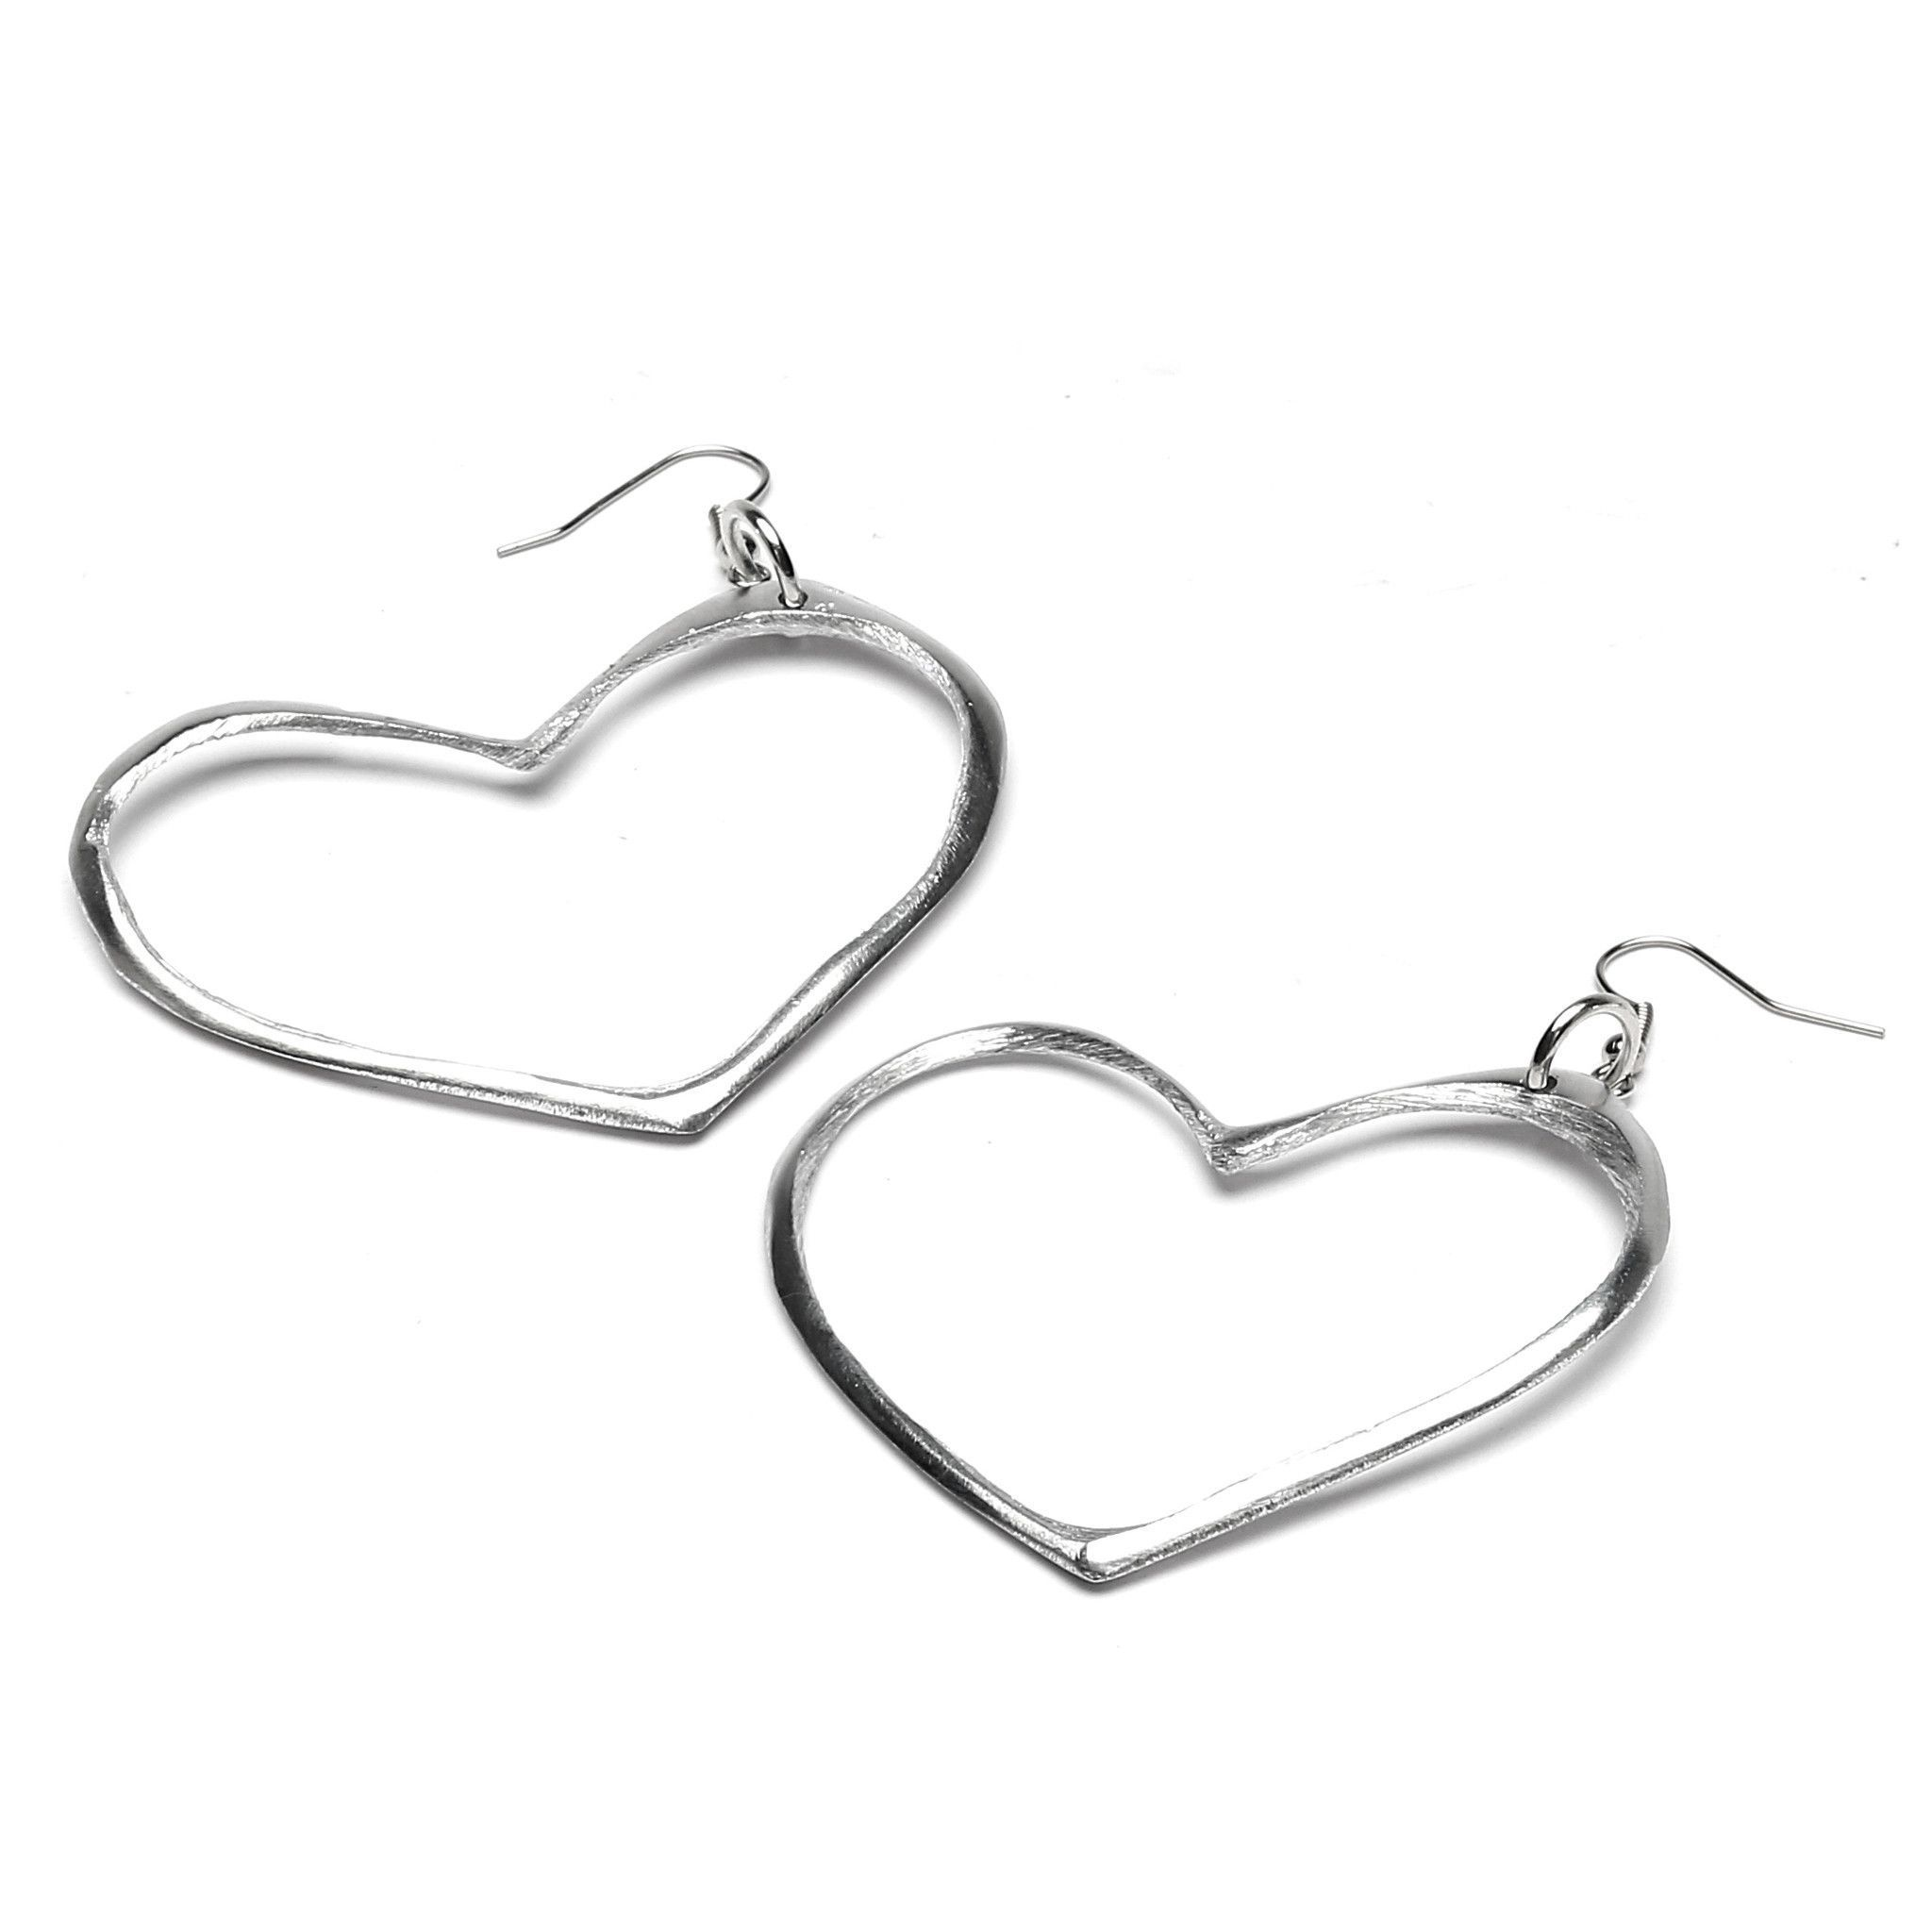 Coure Gm Large Heart Shaped Earrings